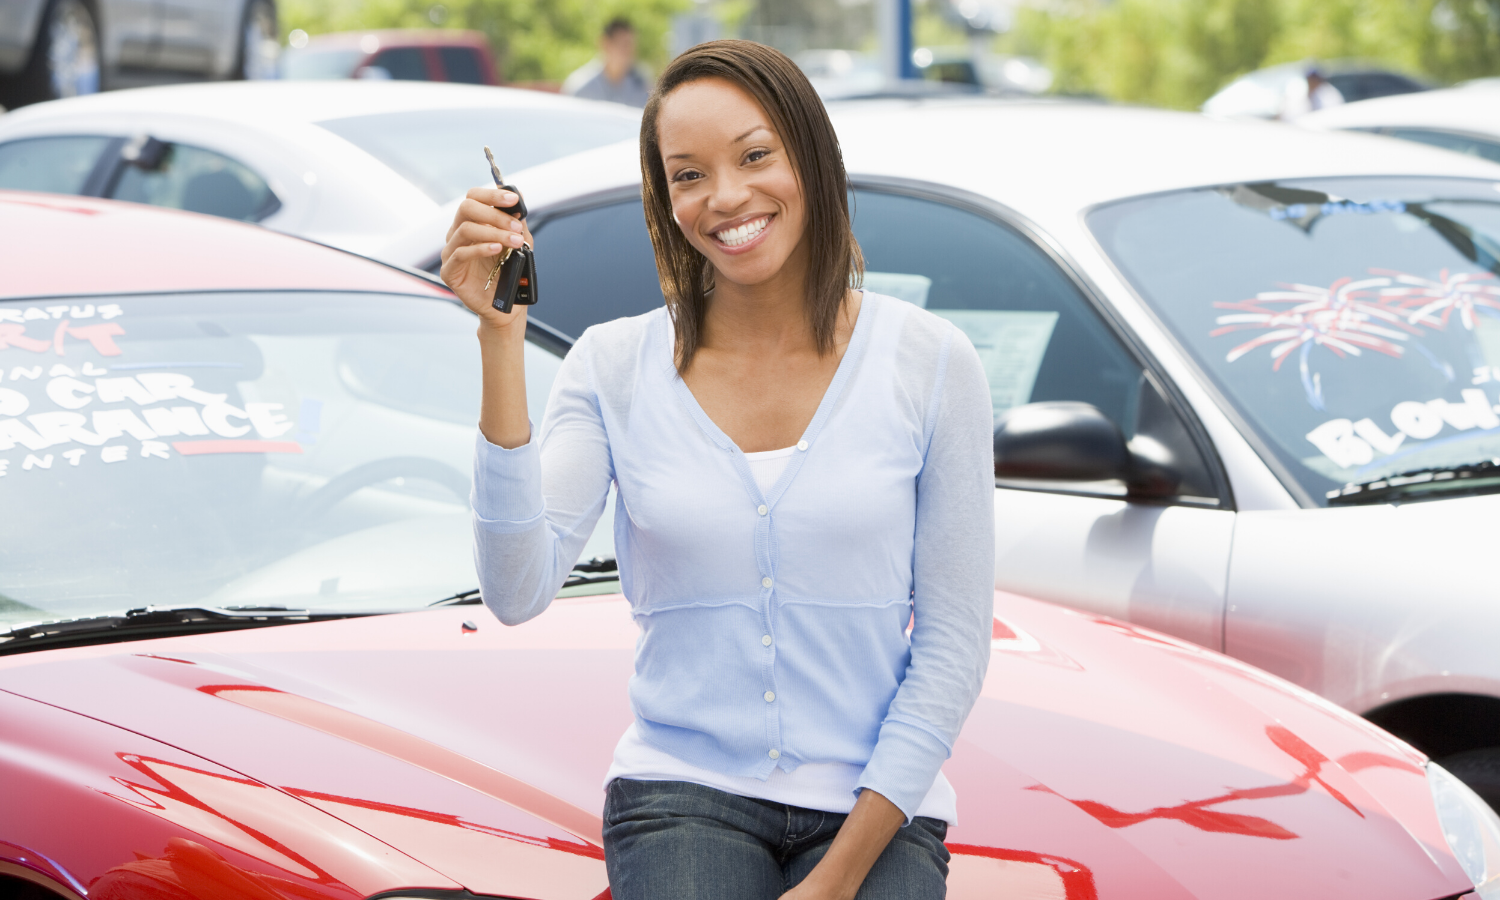 what is a good price for a used car